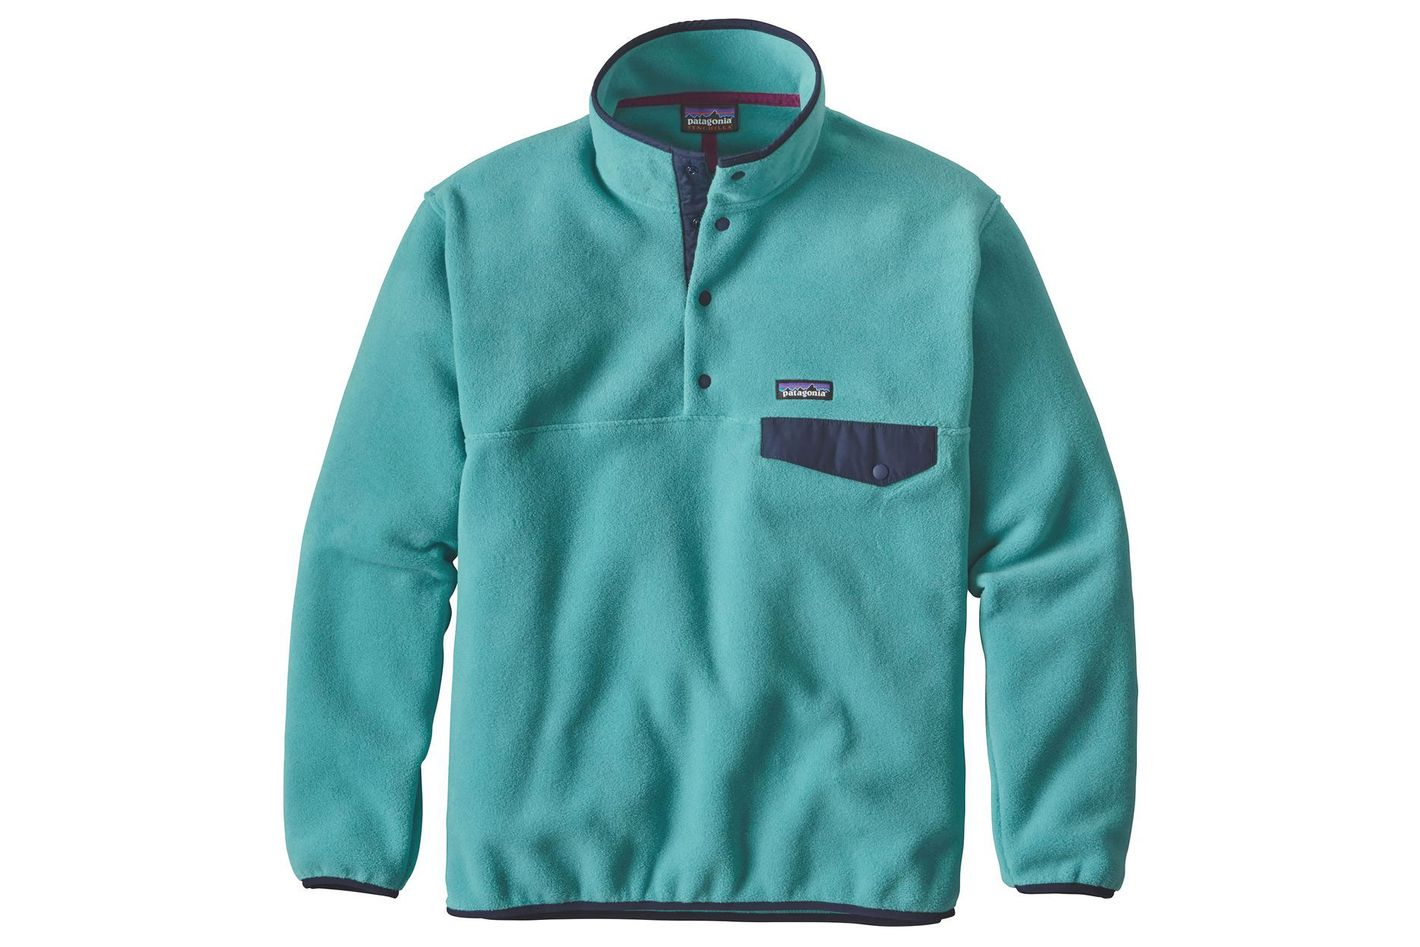 Patagonia Synchilla Snap-T Fleece Pullover in Mogul Blue